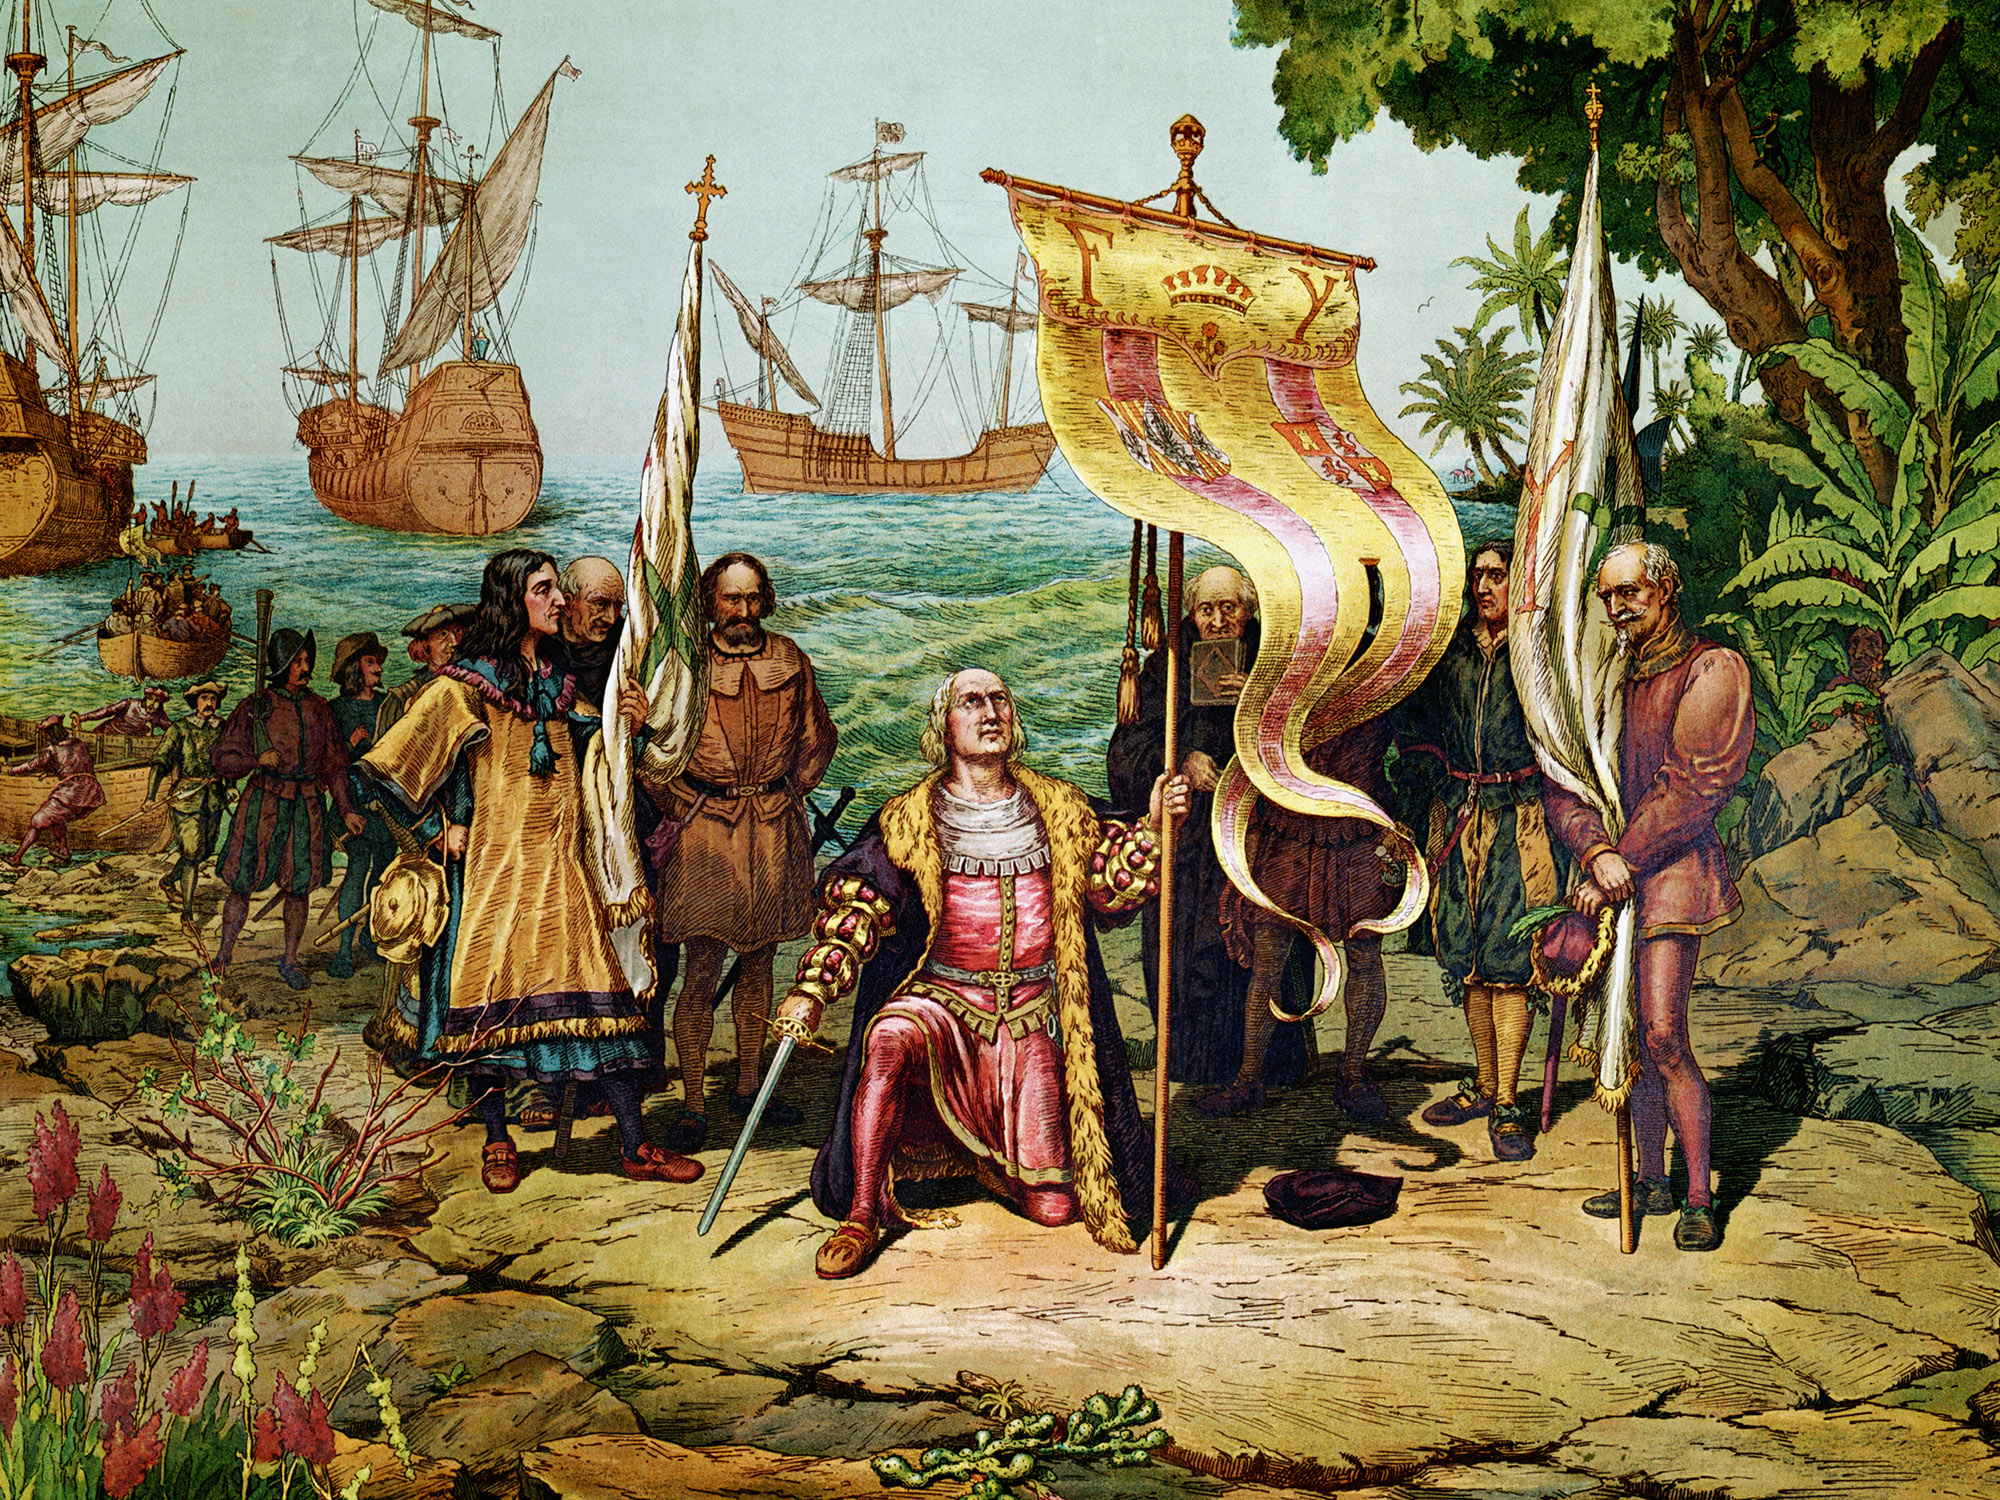 Christopher Columbus Letter To King Ferdinand.Columbus Letter From 1493 Is Returned To Spain Courtesy Of